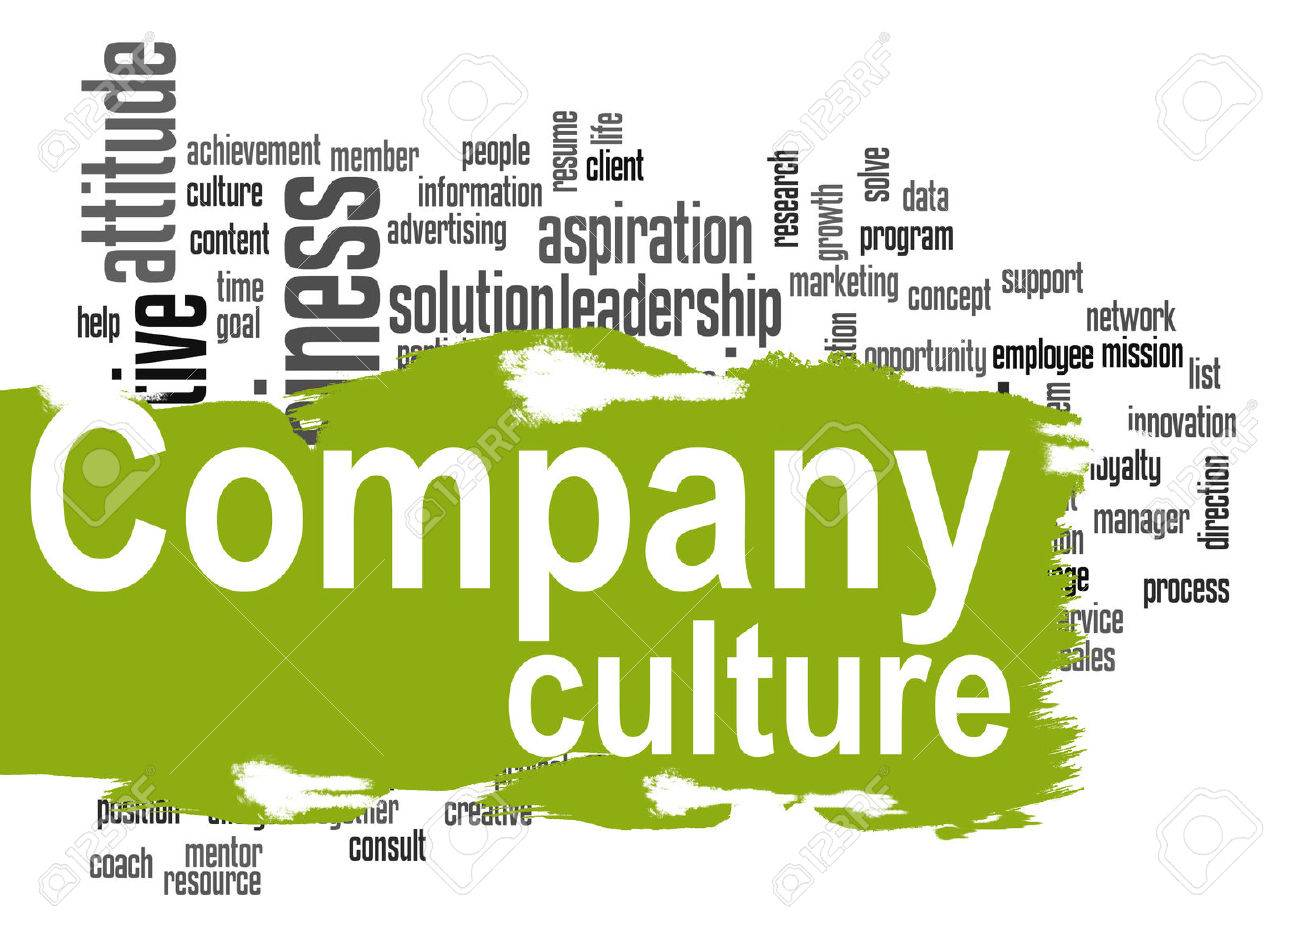 Company culture word cloud image with hi-res rendered artwork that could be used for any graphic design. - 40925161